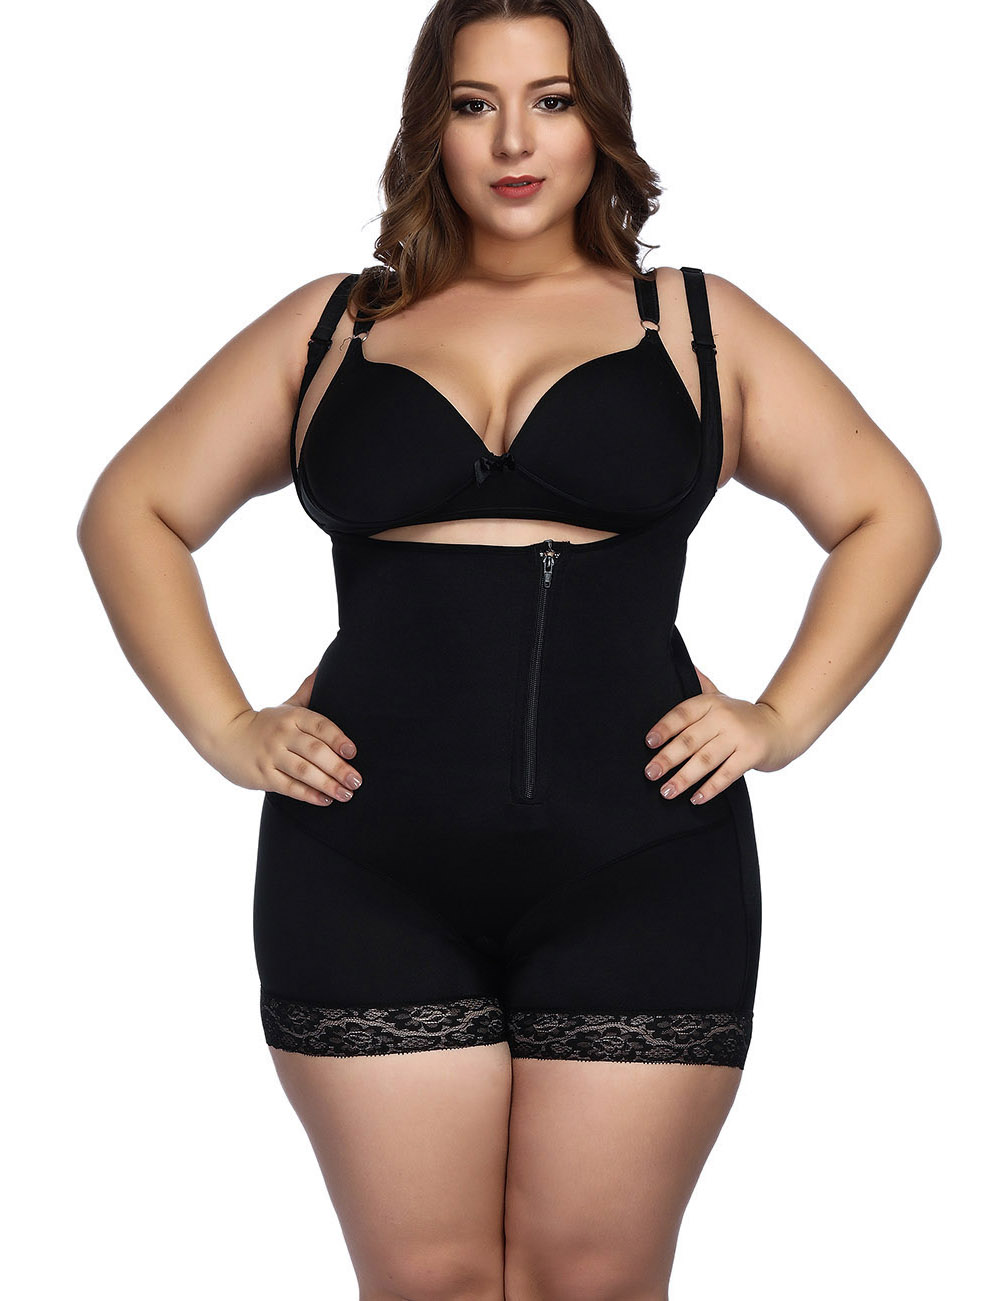 //cdn.affectcloud.com/hexinfashion/upload/imgs/Shaper/Body_Shaper/B180059-BK1/B180059-BK1-201911055dc142f80466d.jpg